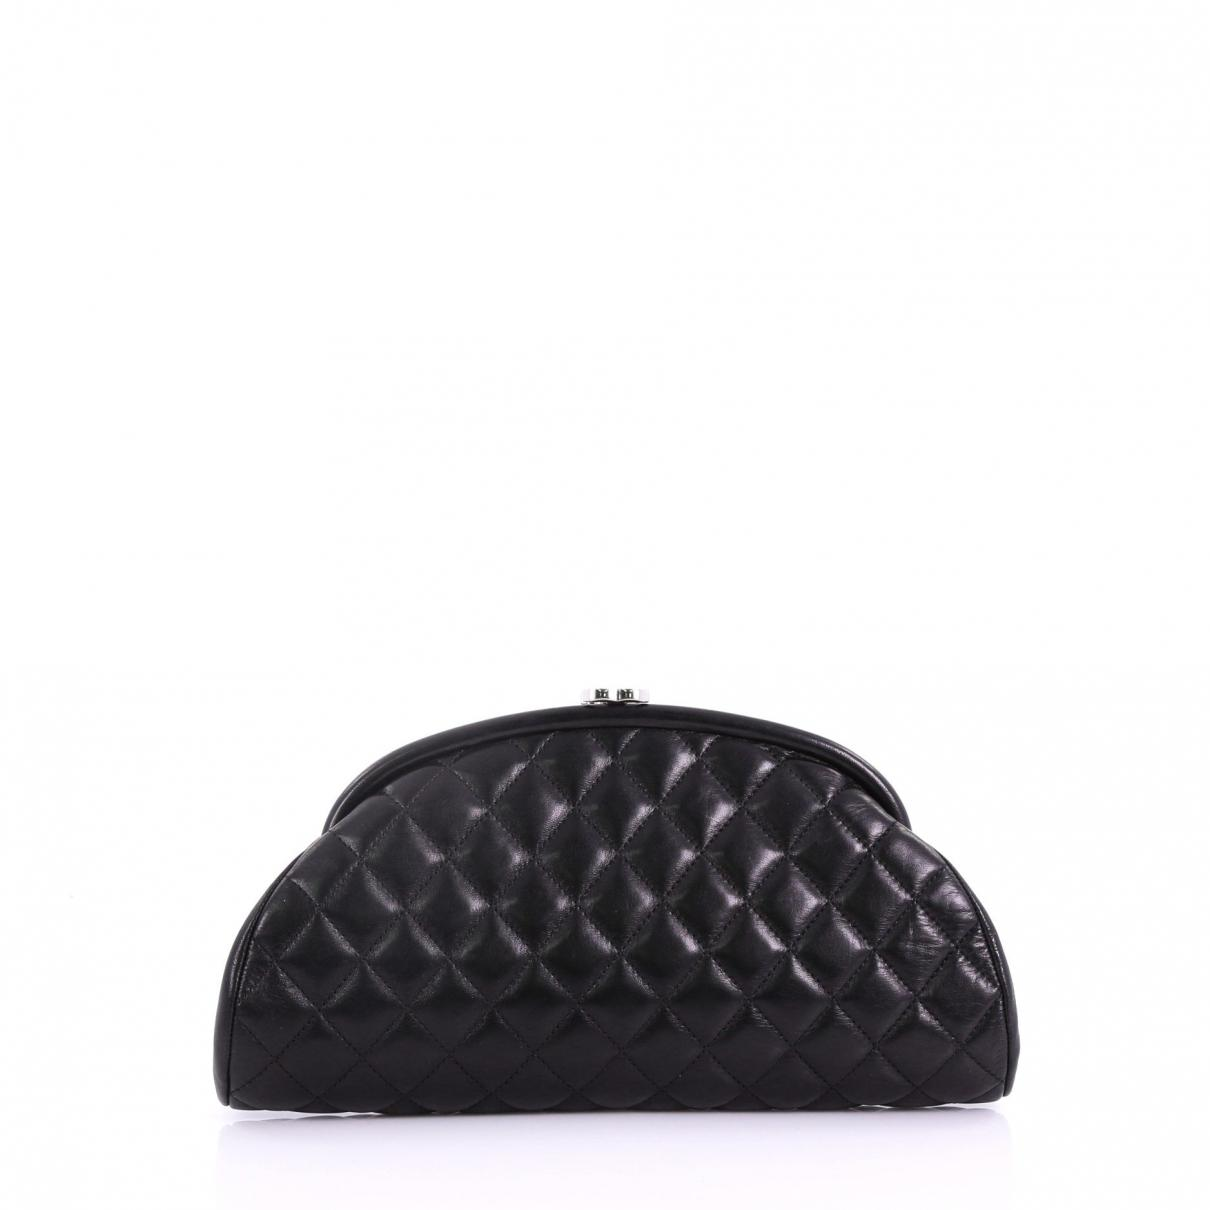 0e806ce0cef5 Chanel. Women's Black Timeless/classique Leather Clutch Bag. $1,560 From Vestiaire  Collective